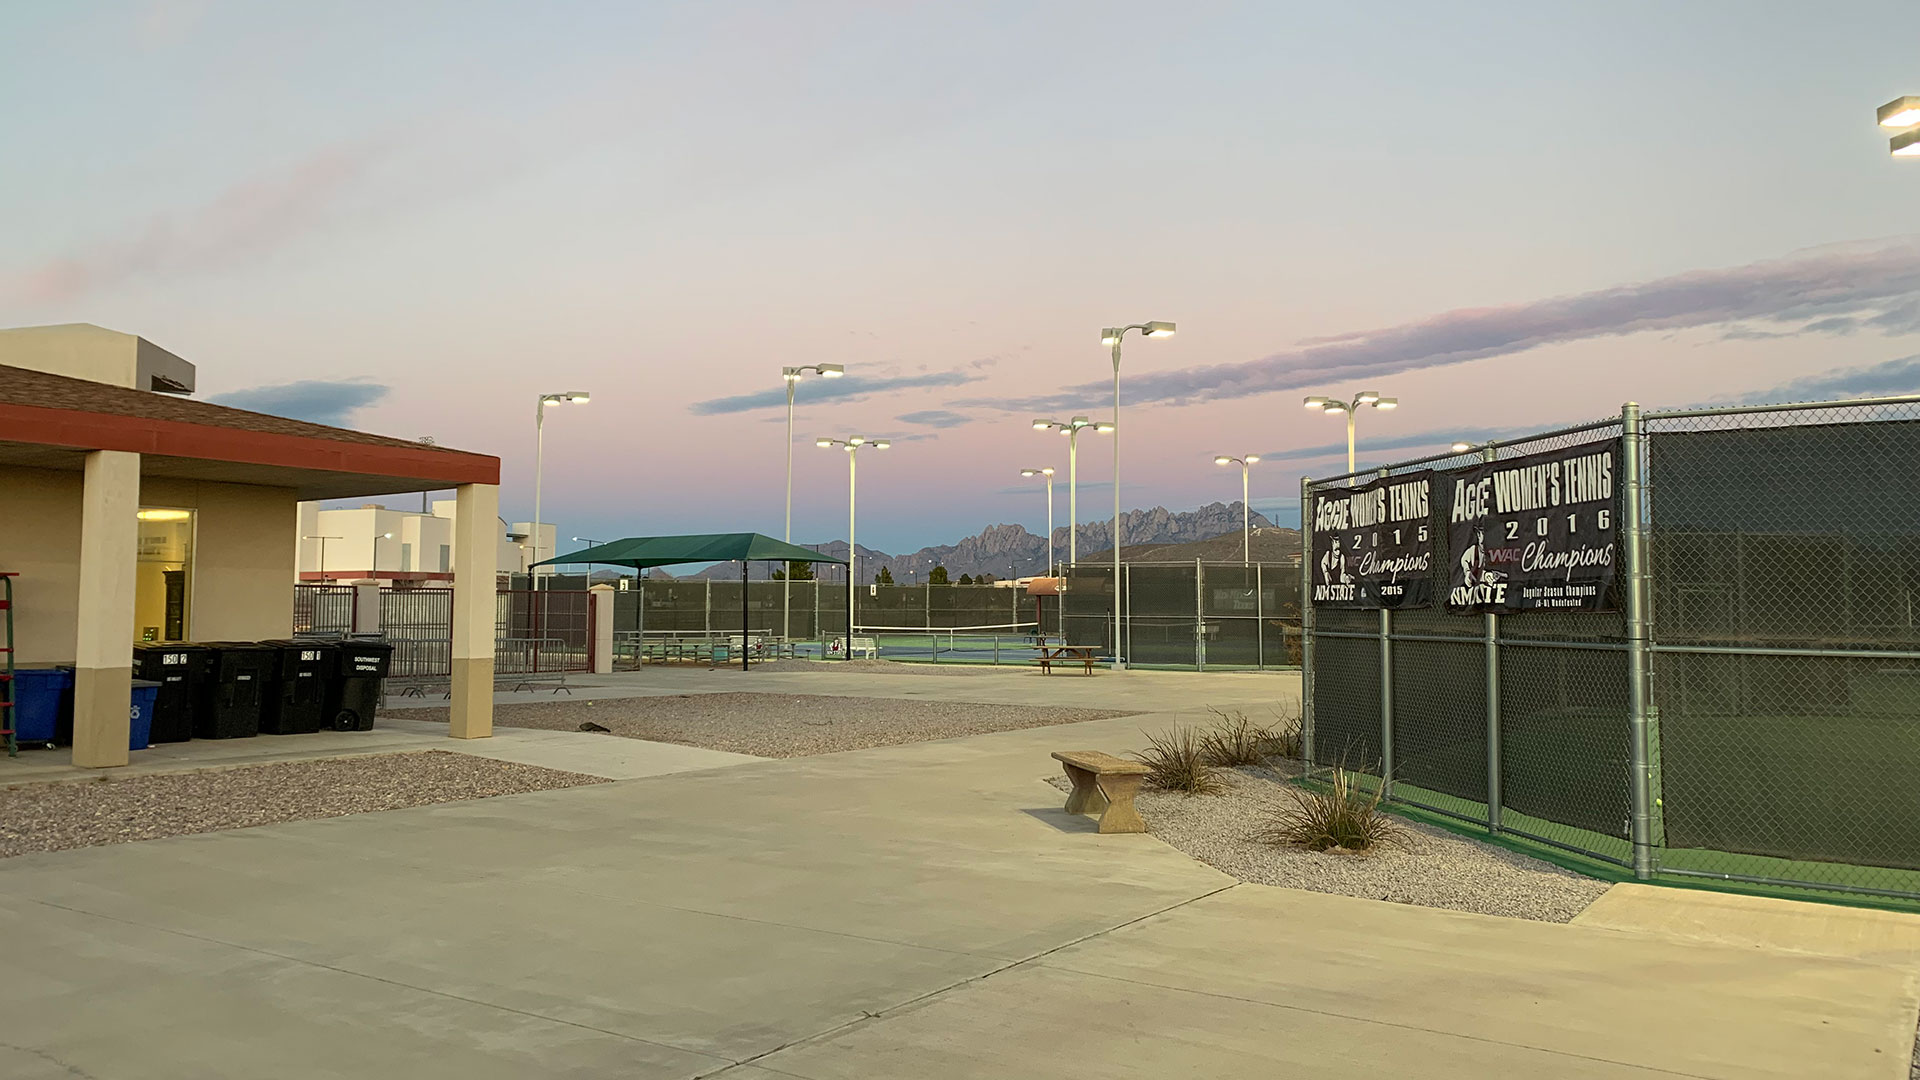 New Mexico State University Tennis – Las Cruces